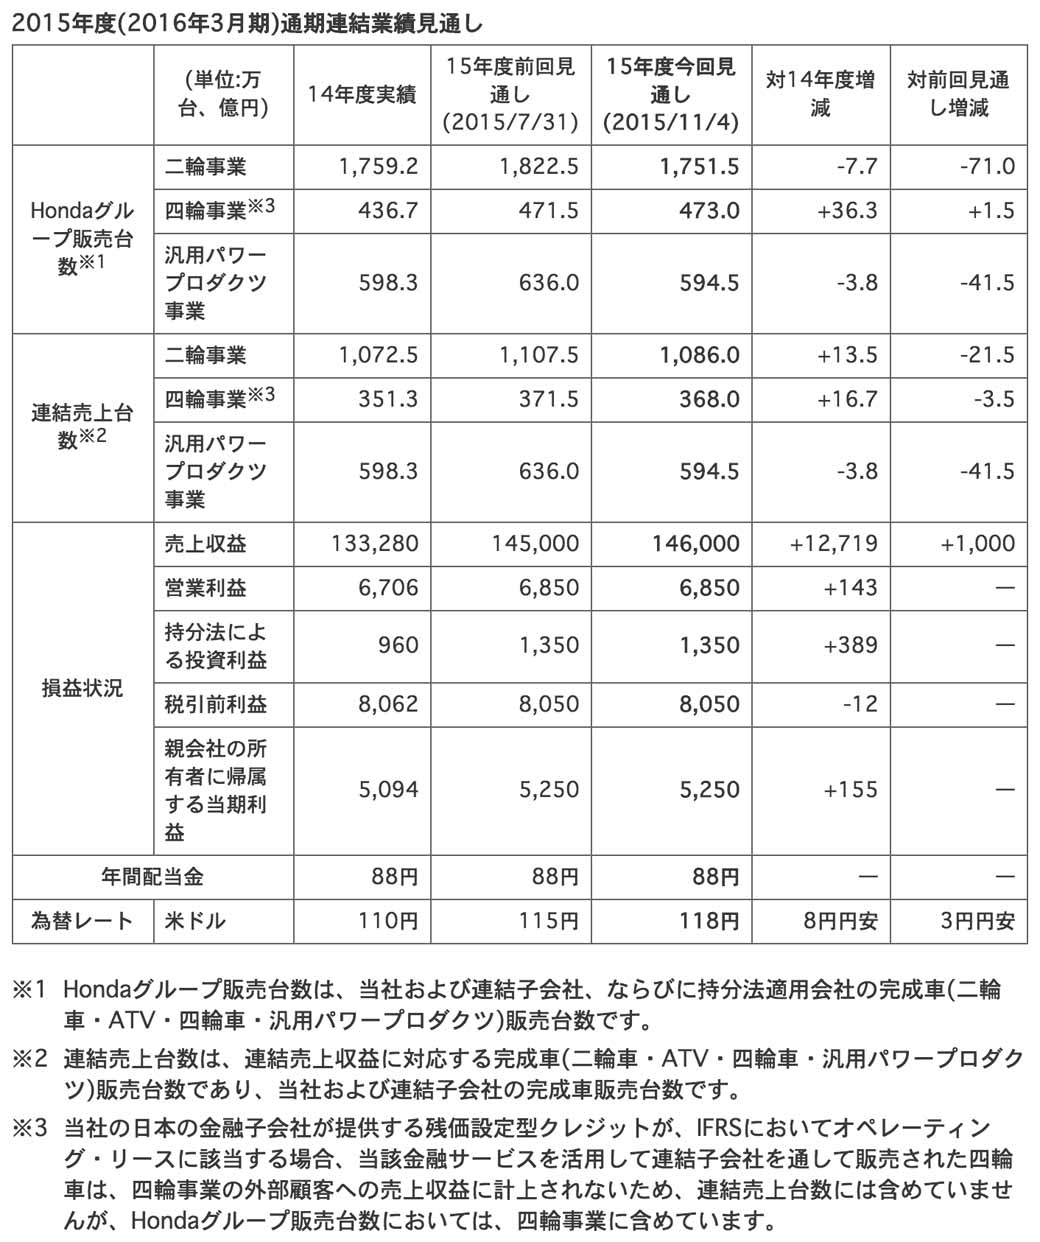 honda-announced-the-consolidated-financial-results-fiscal-2015-first-half20151105-2